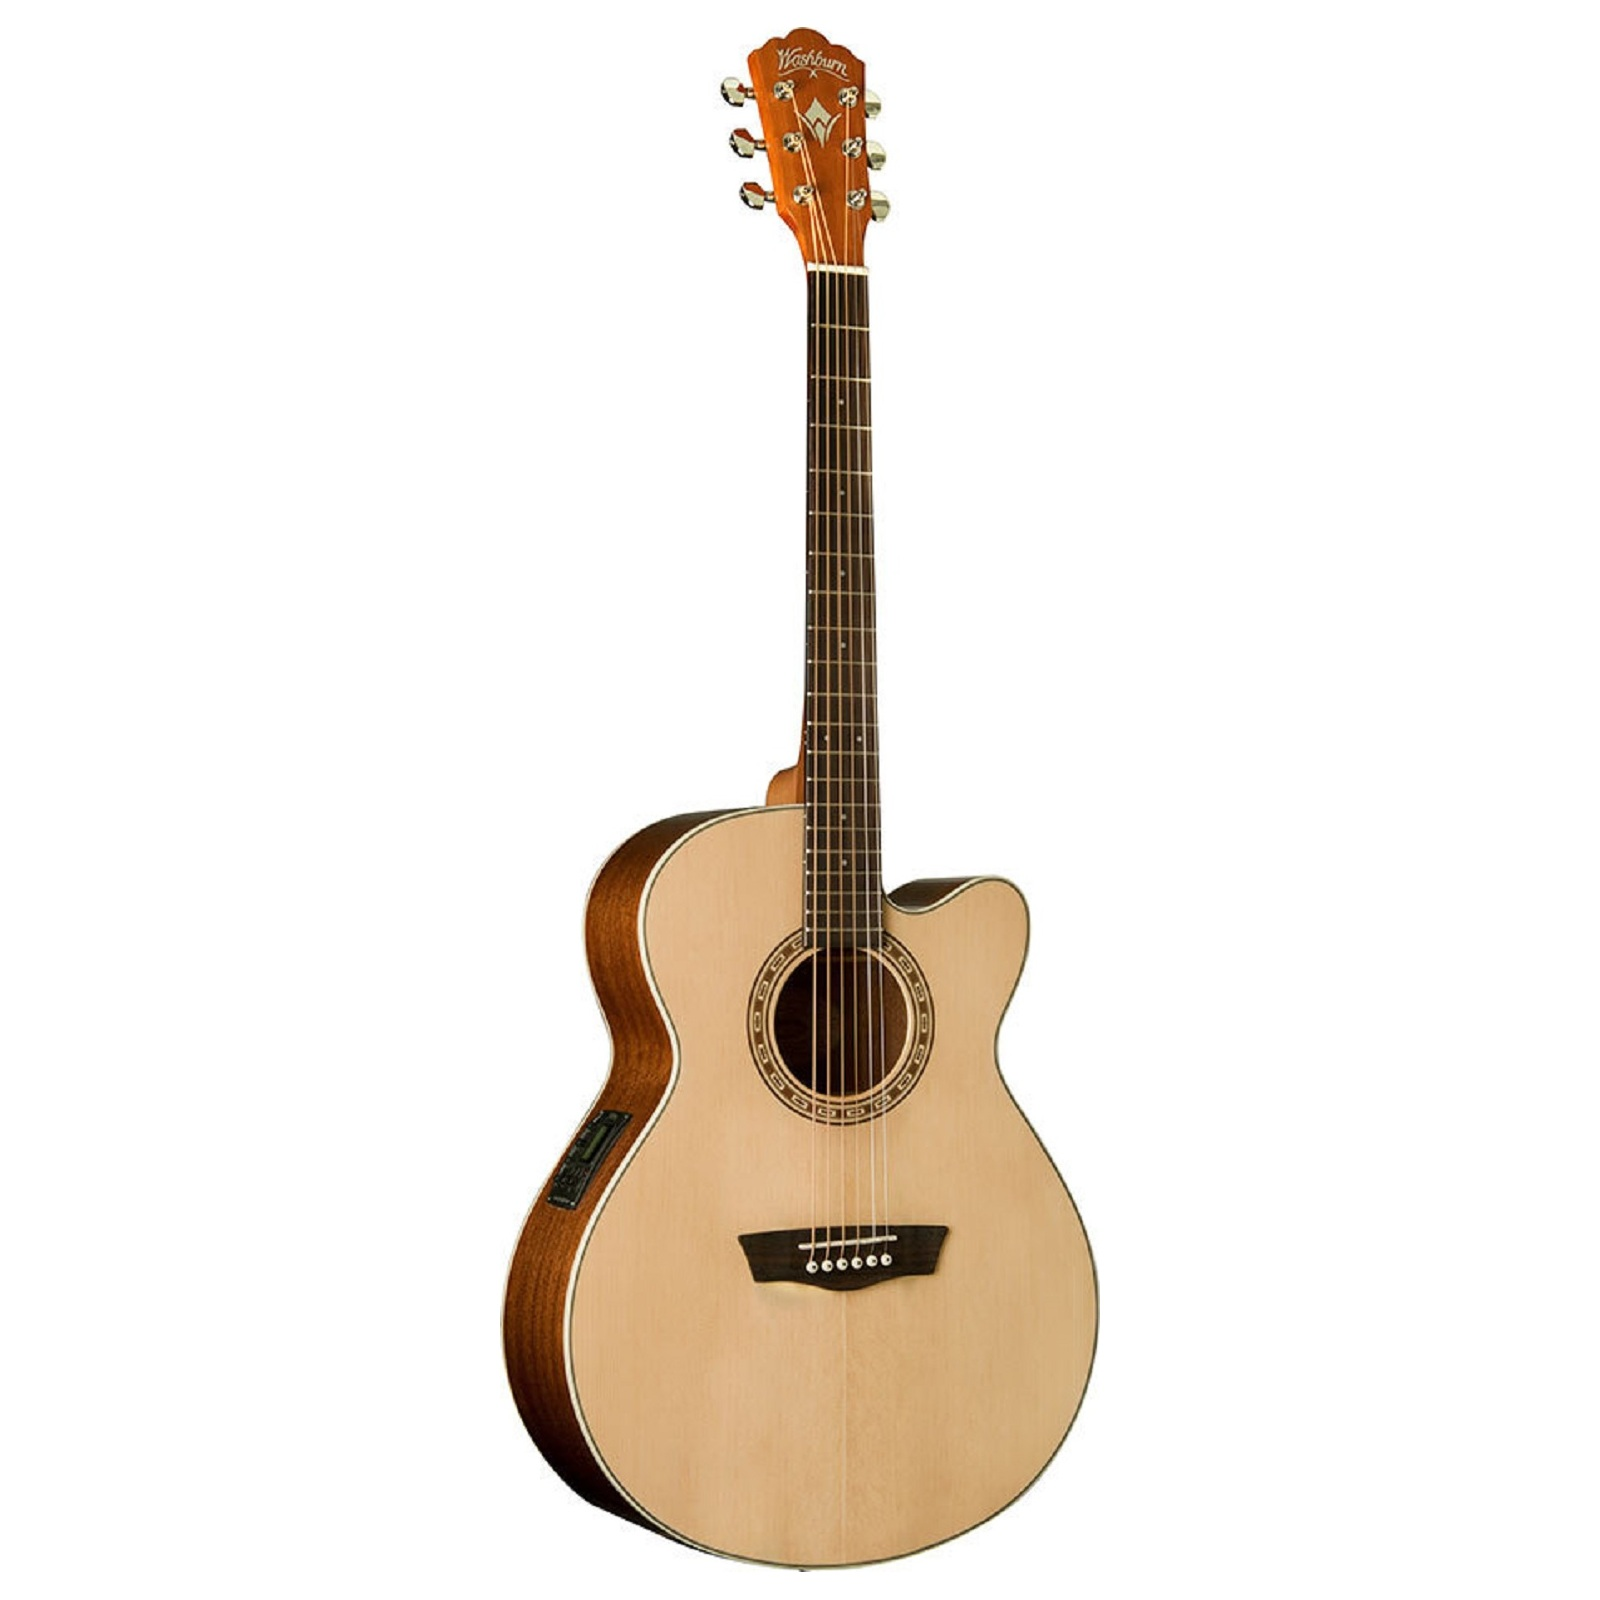 Washburn WG7SCE Harvest Grand Auditorium Cutaway Acoustic Guitar. Natural Gloss